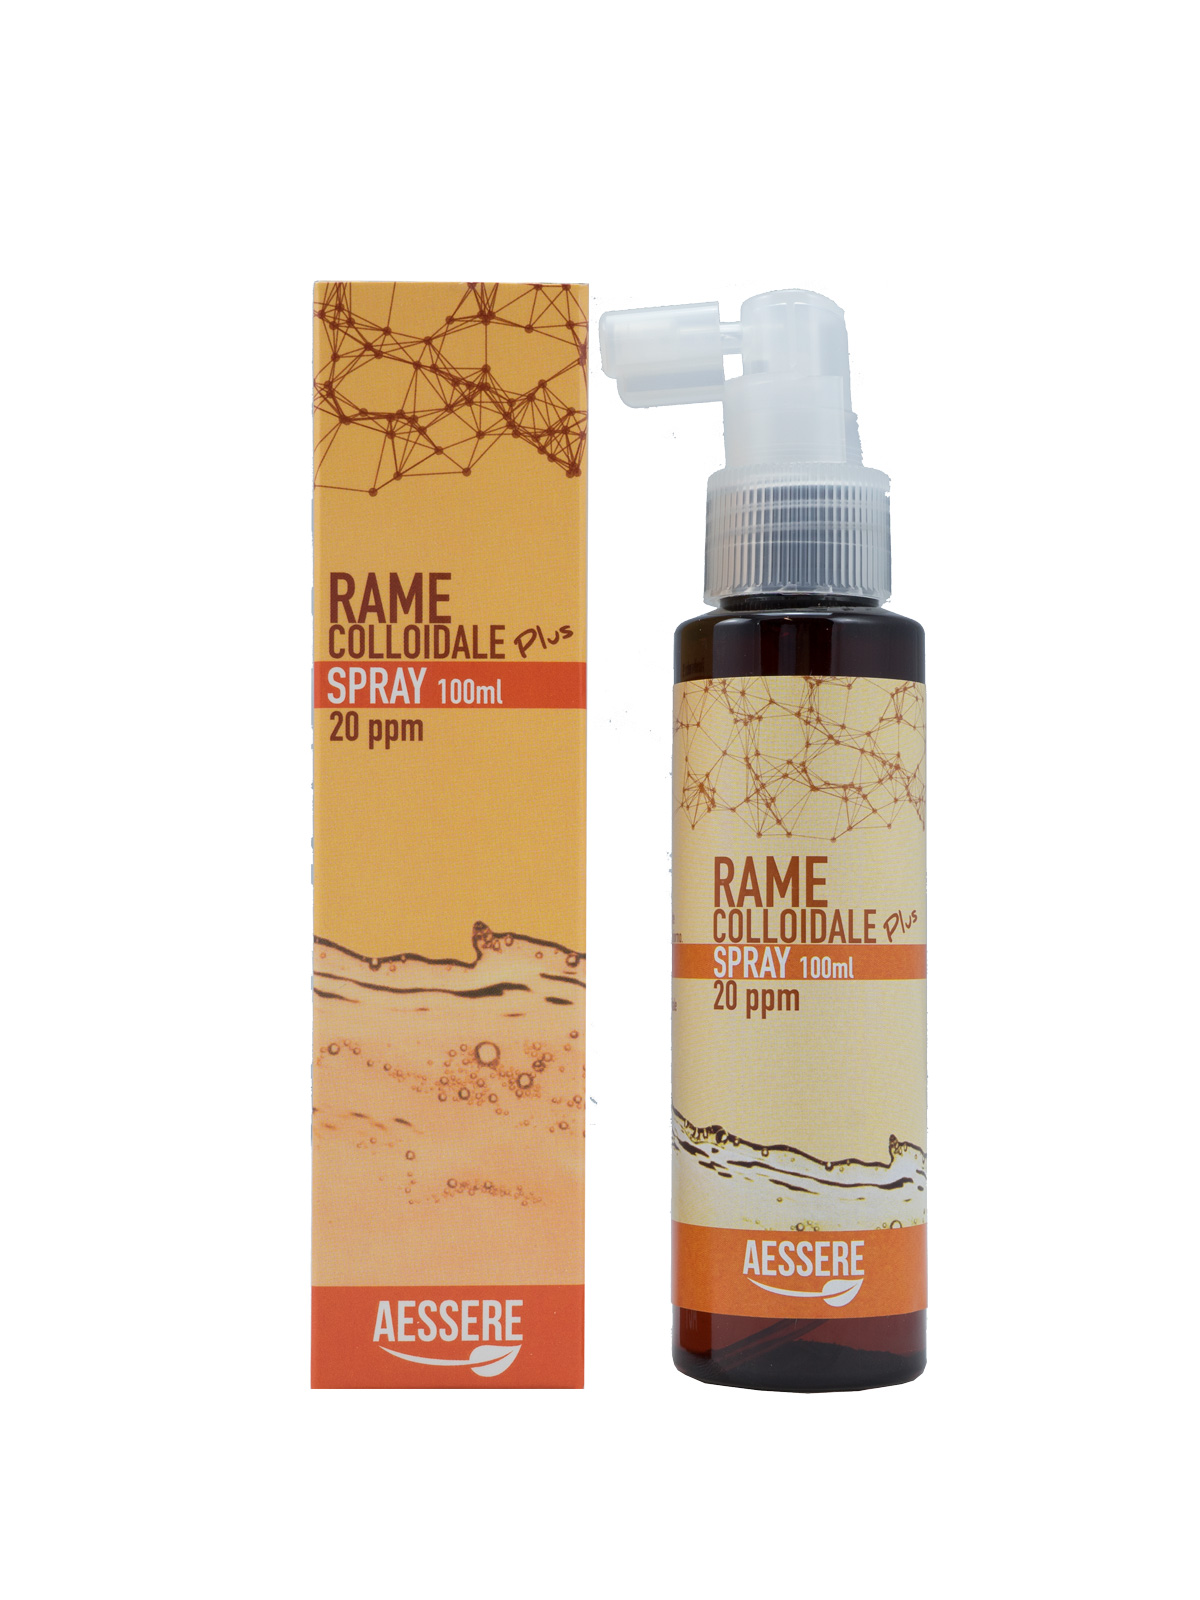 Image of Aessere Rame Colloidale Plus Spray 20Ppm 100ml 972686190